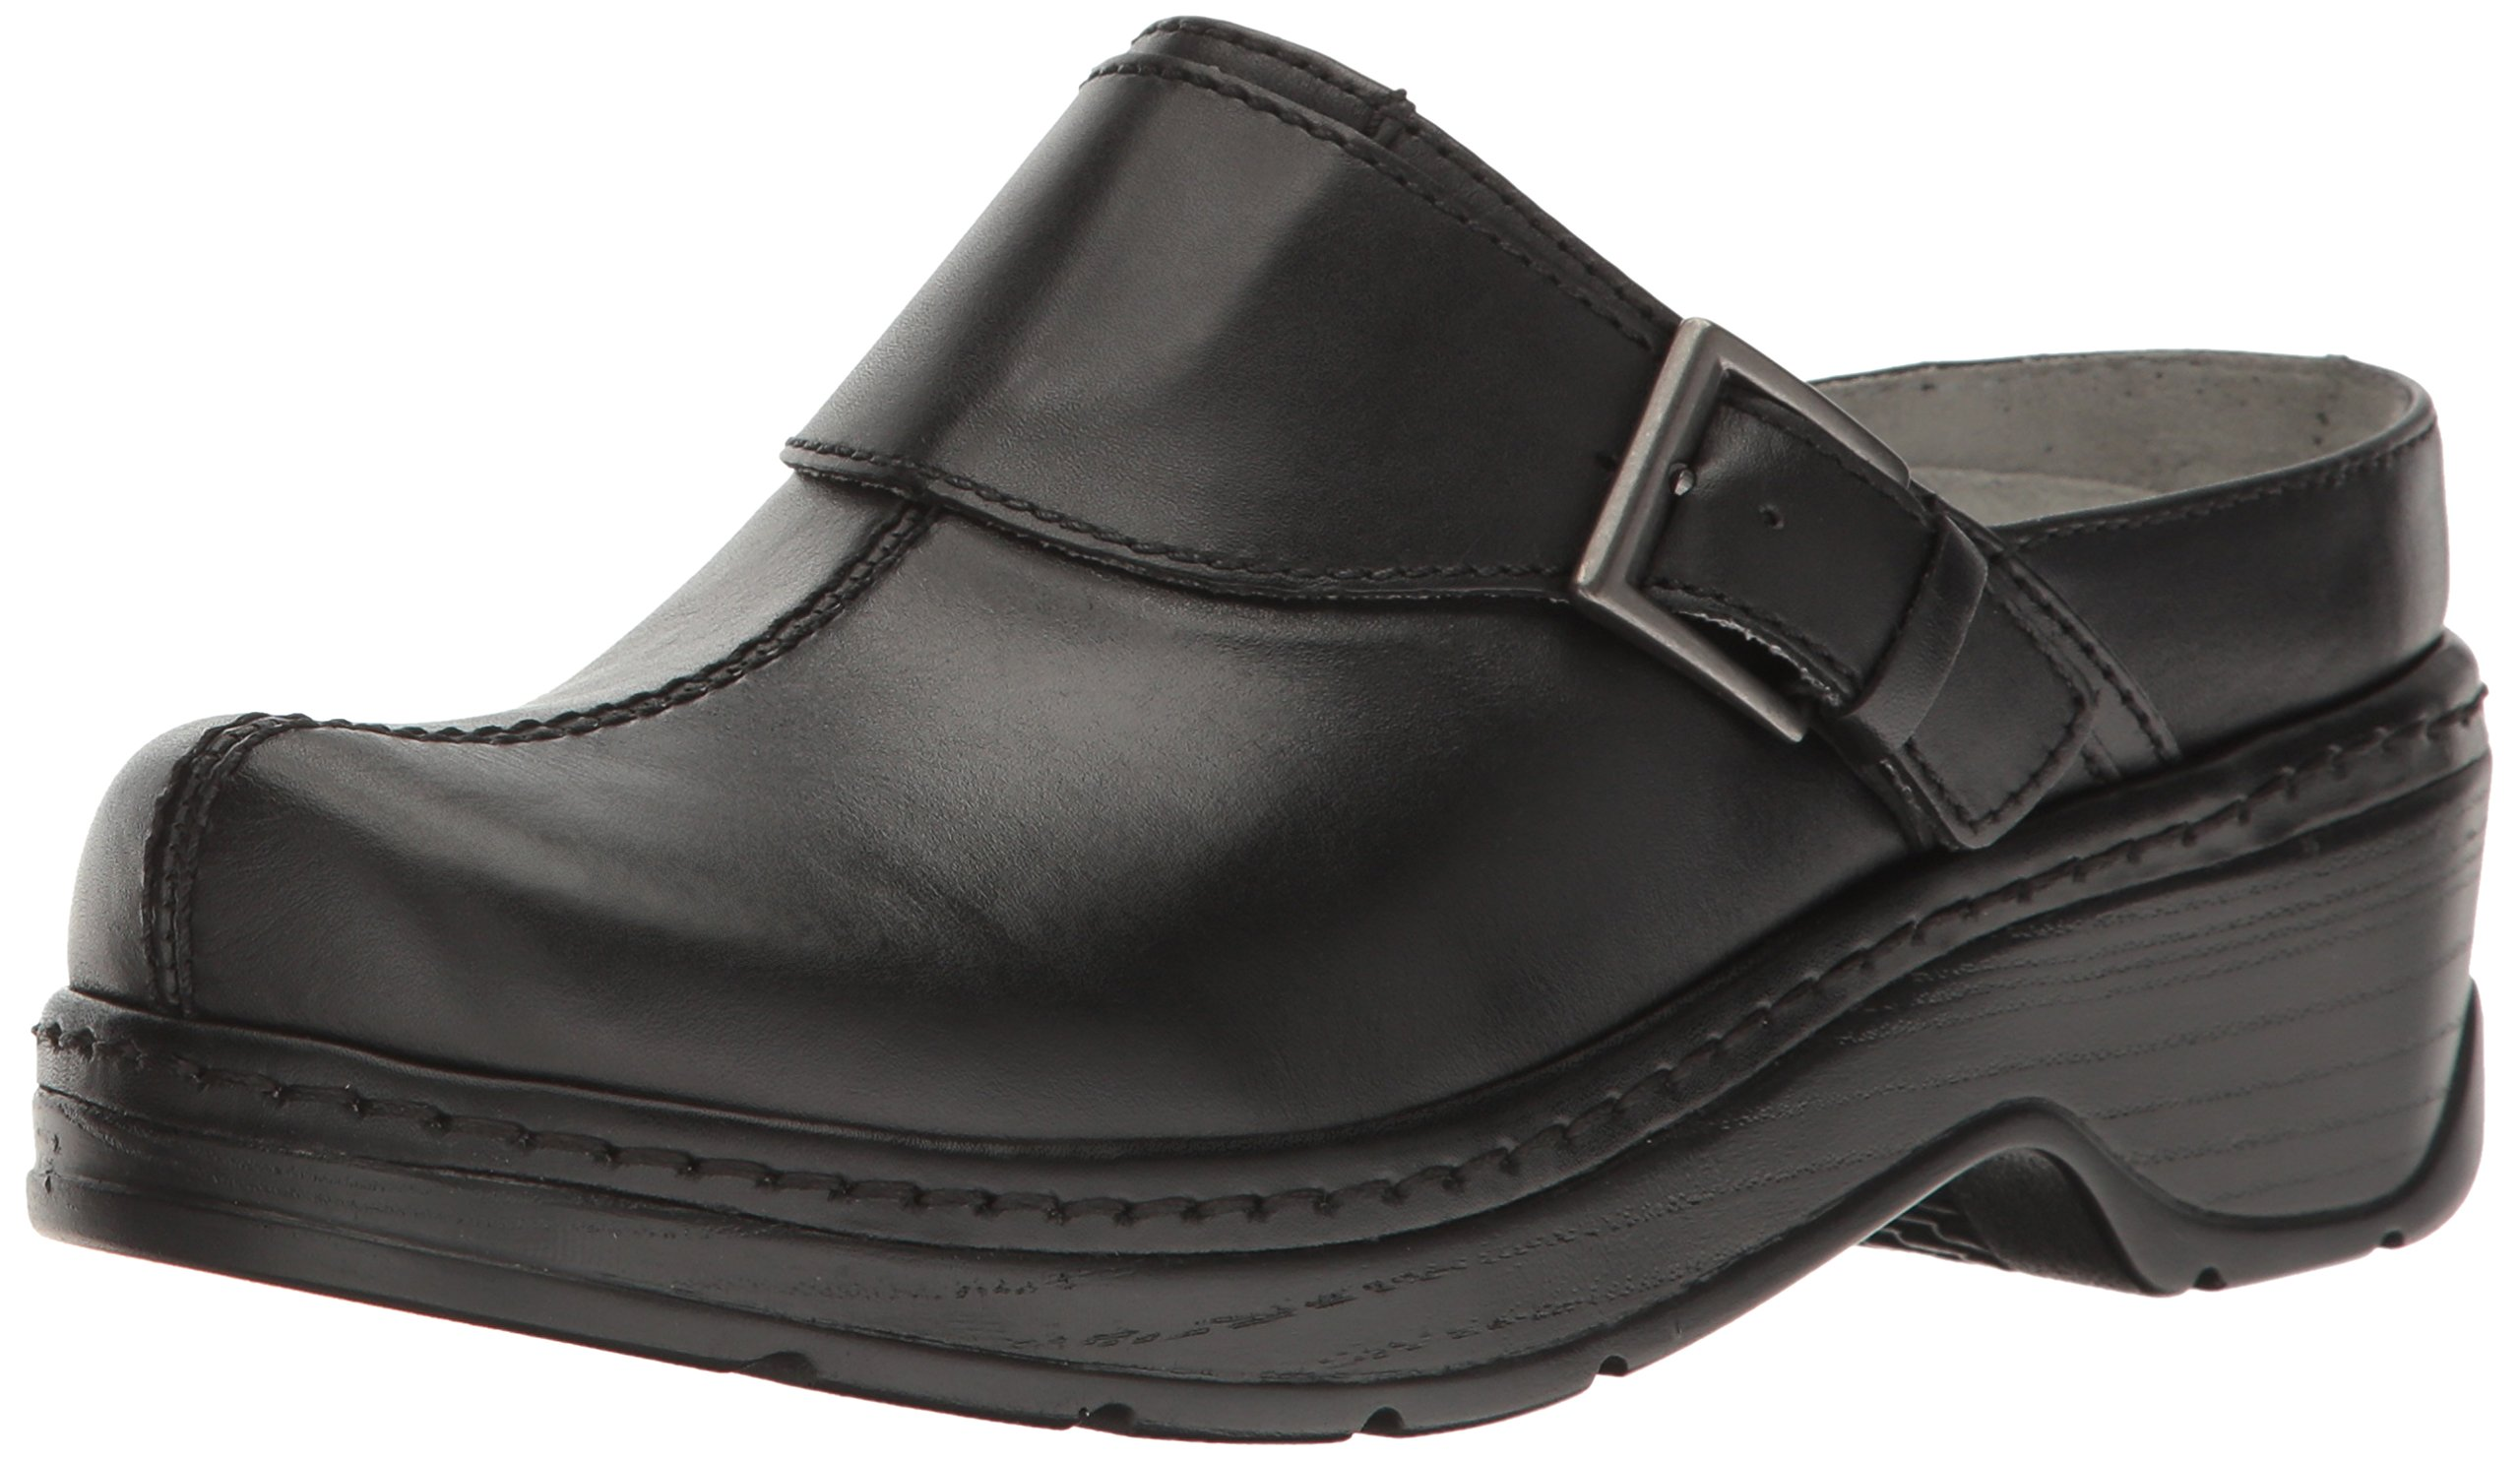 Klogs USA Women's Austin Open Back Clog,Black Smooth,8.5 W US